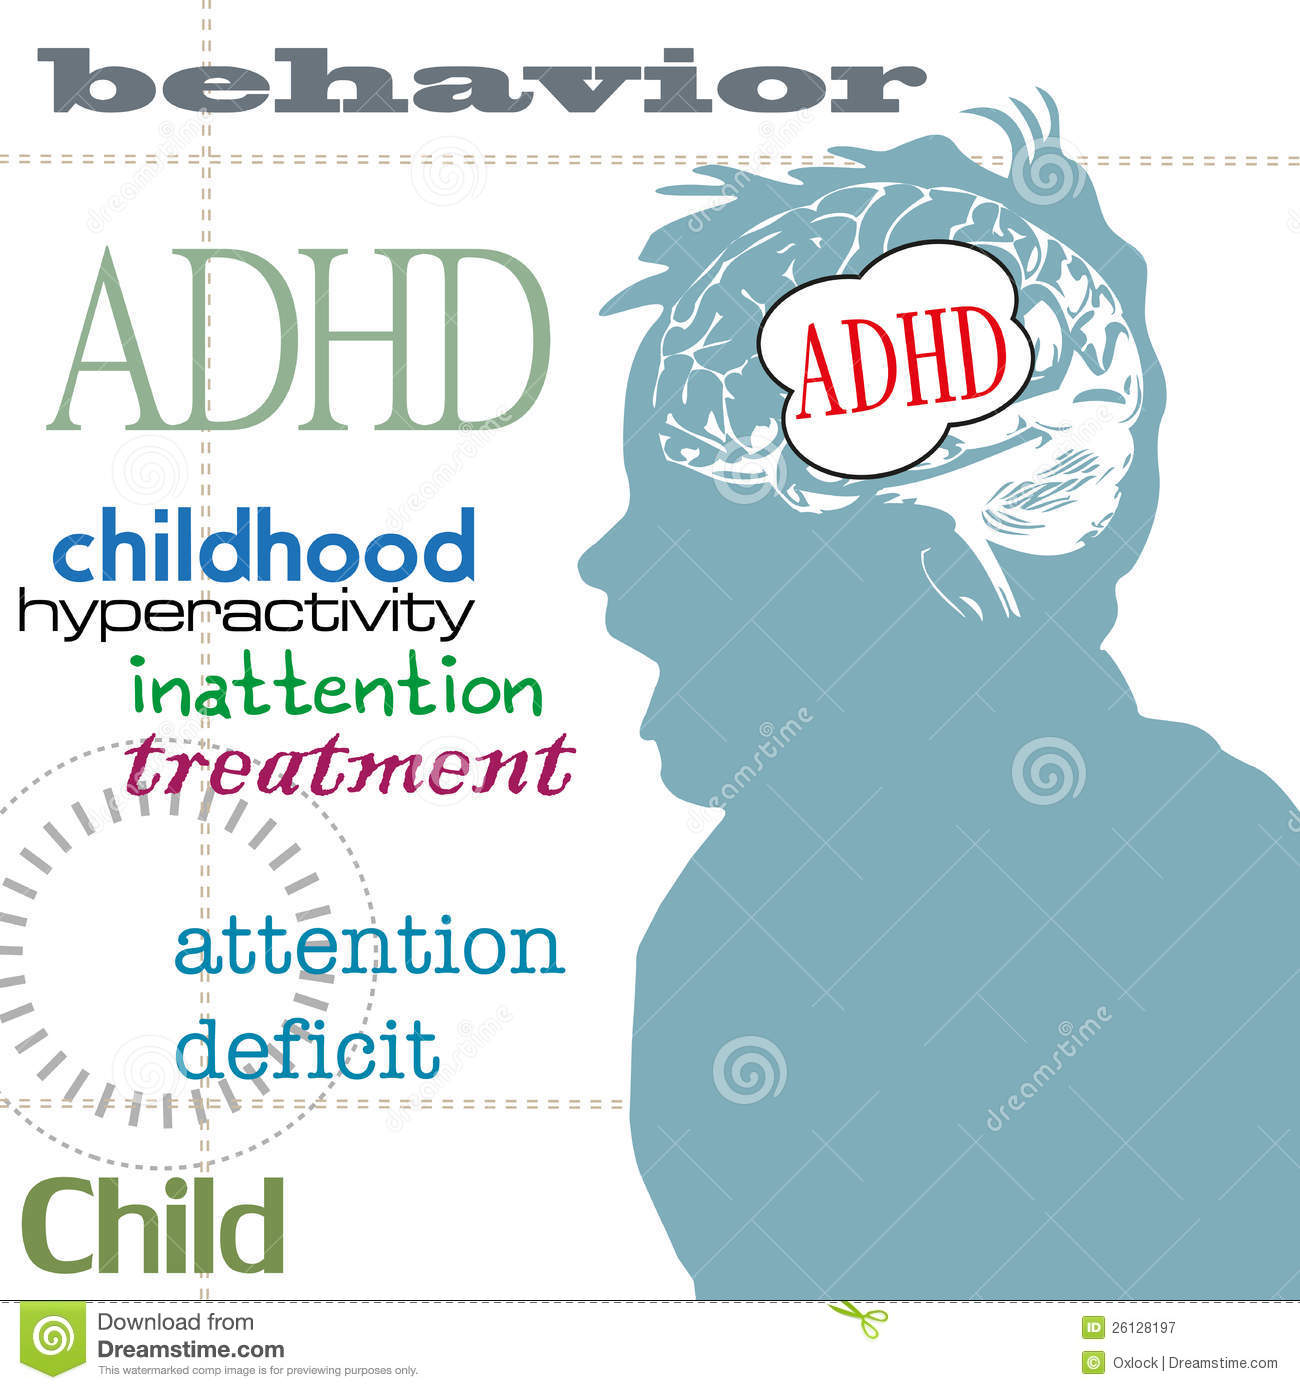 an overview of the illness attention deficit hyperactivity disorder Learn about attention deficit hyperactivity disorder, a disorder that affects 5 to 7 percent of school-age children, and the care available at boston children's.